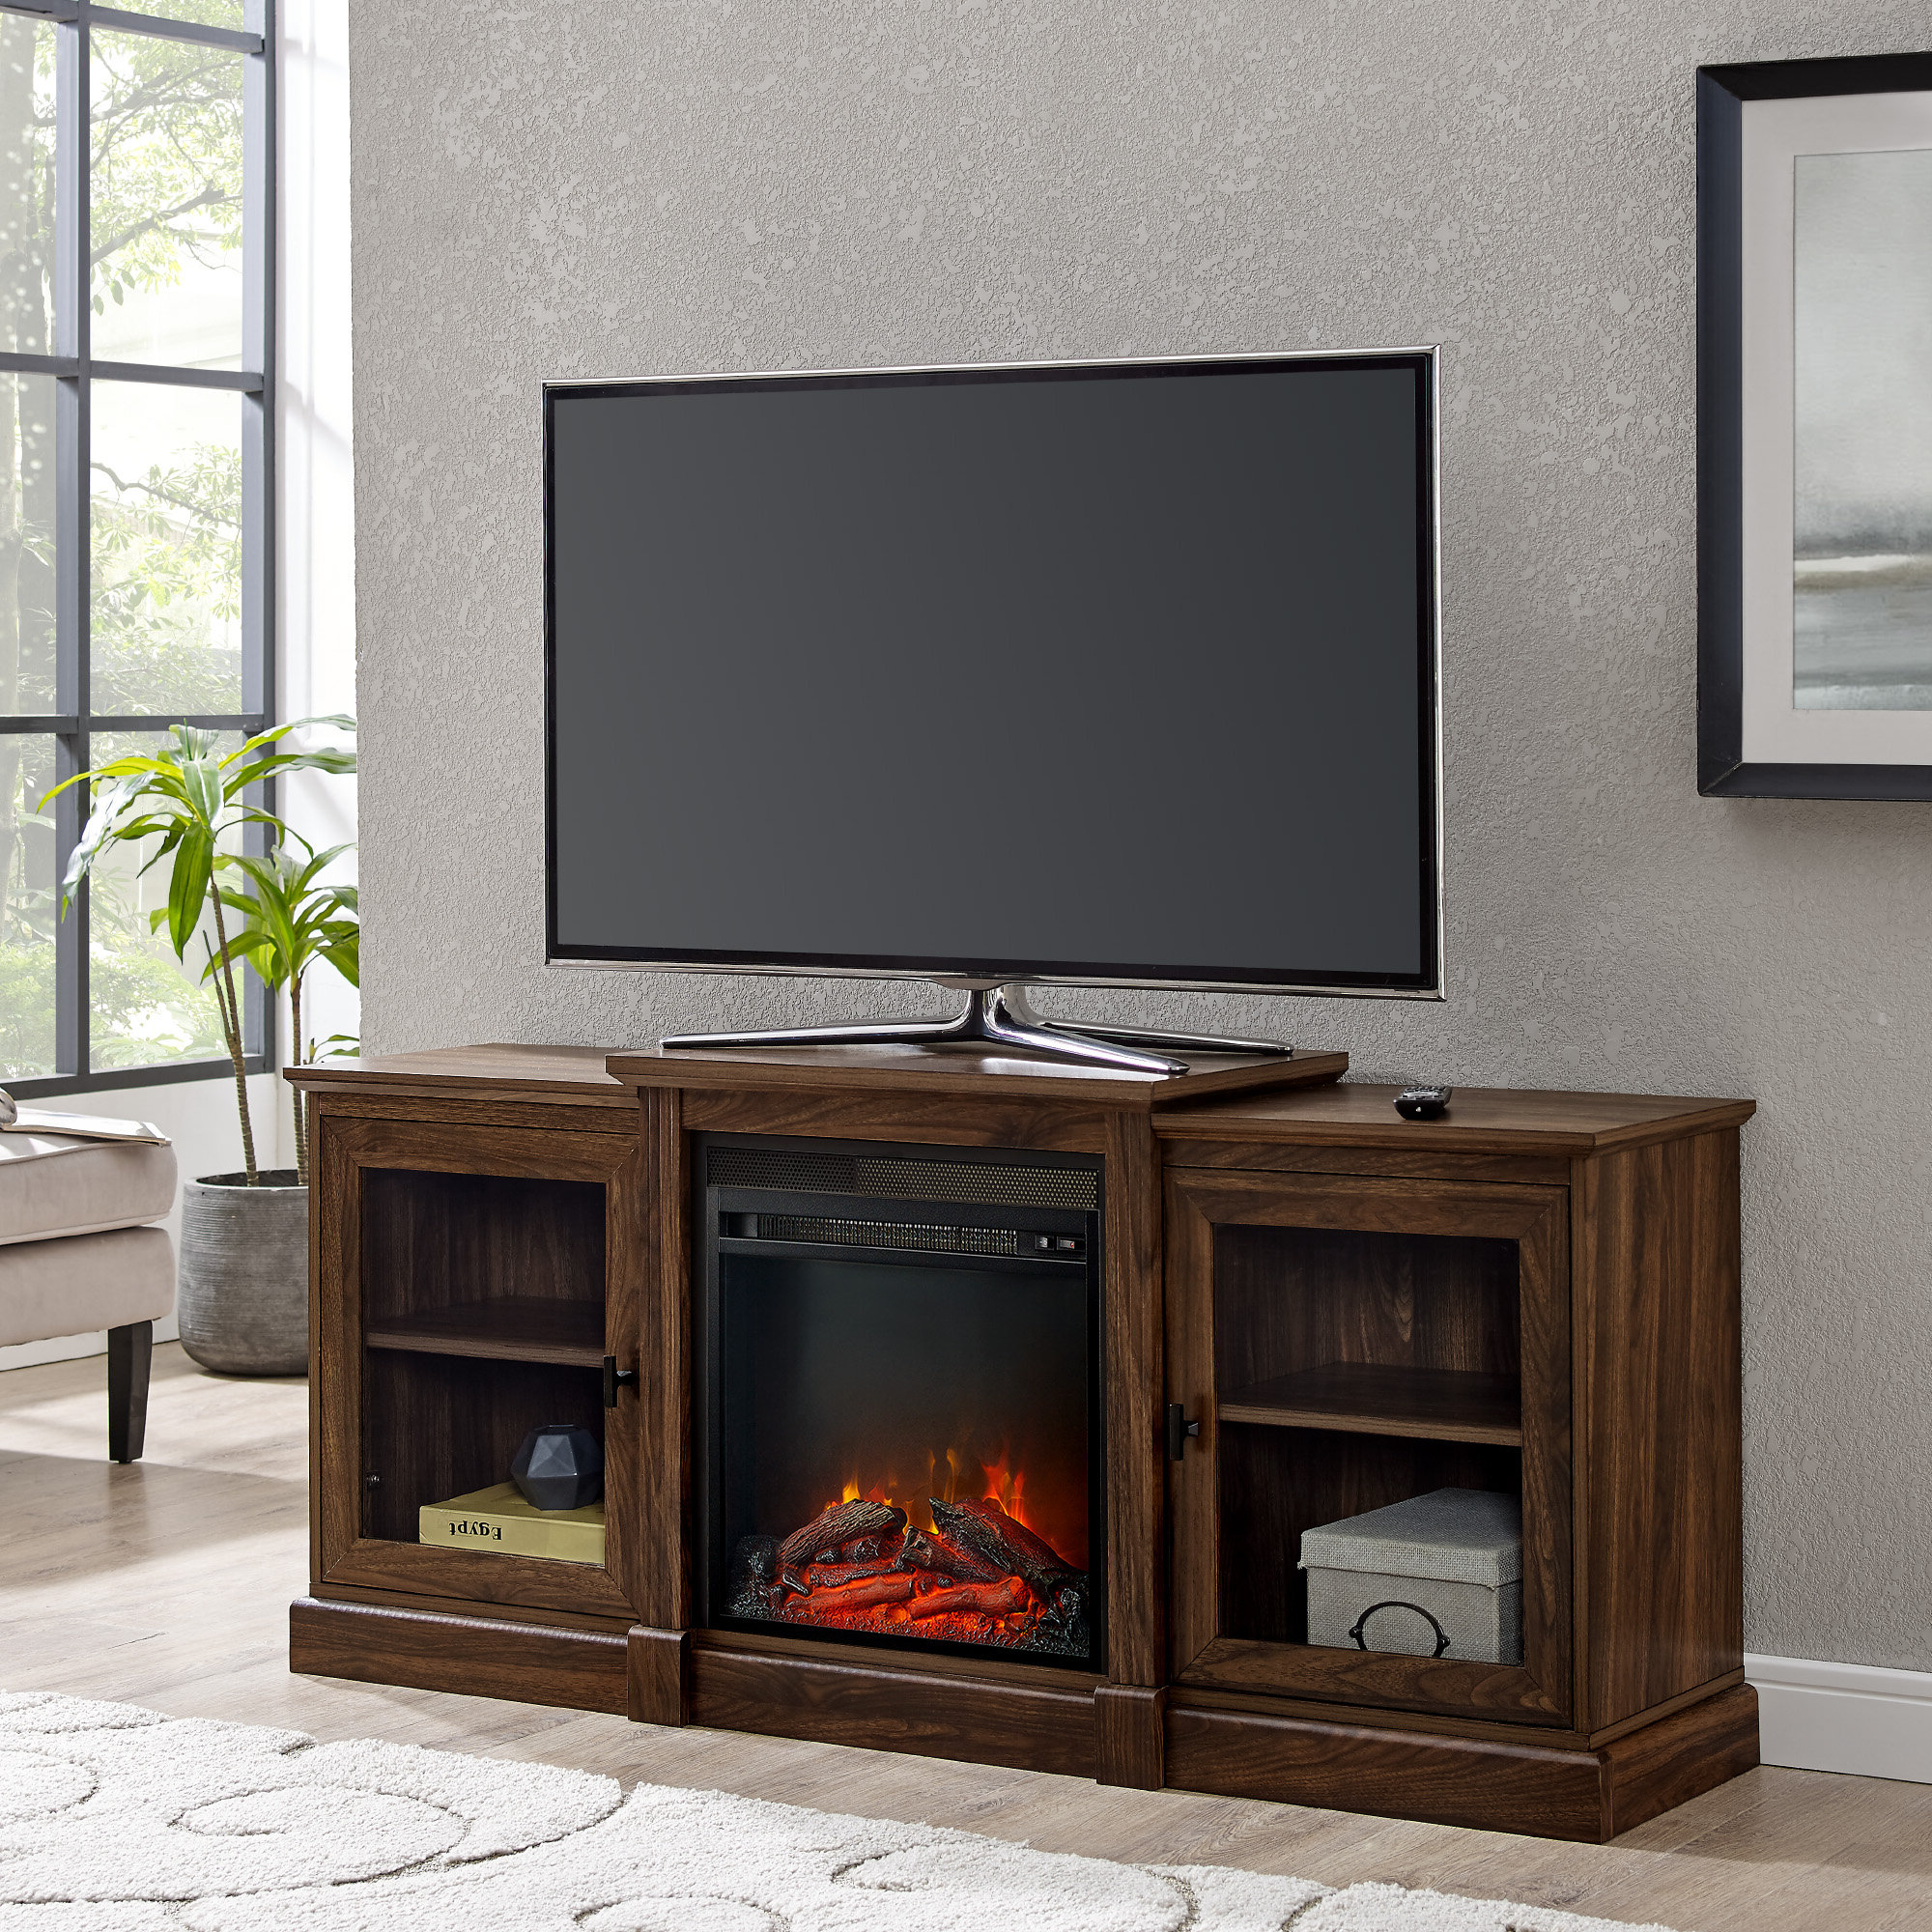 """65 Inch Tv Stand With Fireplace With Stamford Tv Stands For Tvs Up To 65"""" (View 3 of 20)"""